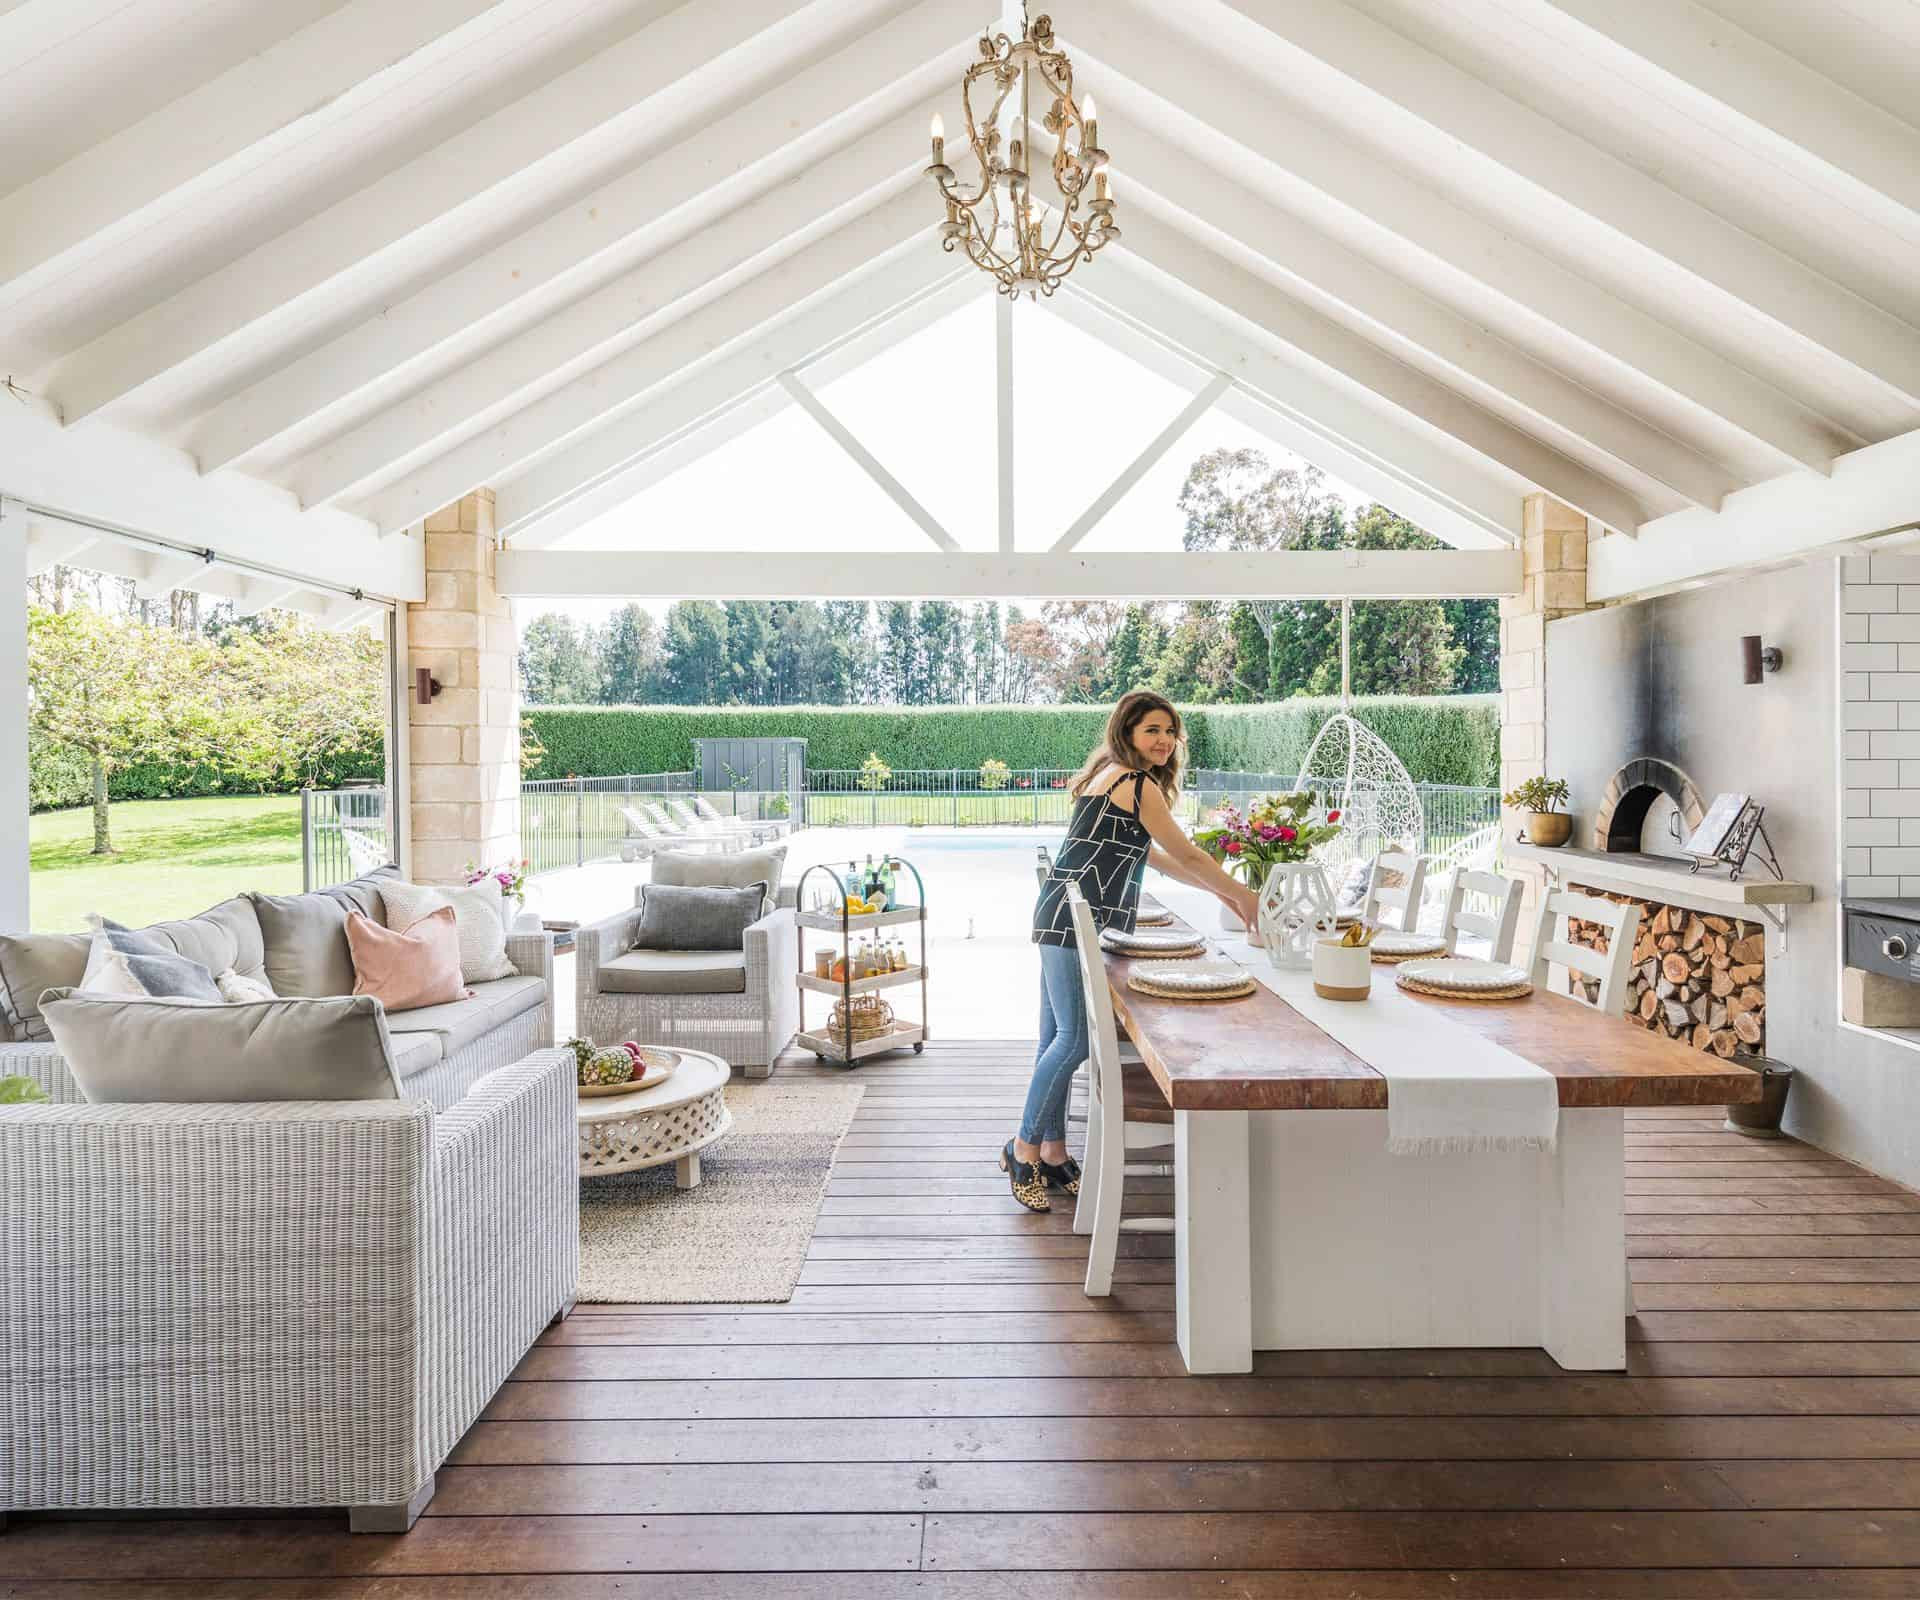 This Waikato Home Was Designed To Maximise Quality Family Time Spent In The Great Outdoors Homes To Love NZ